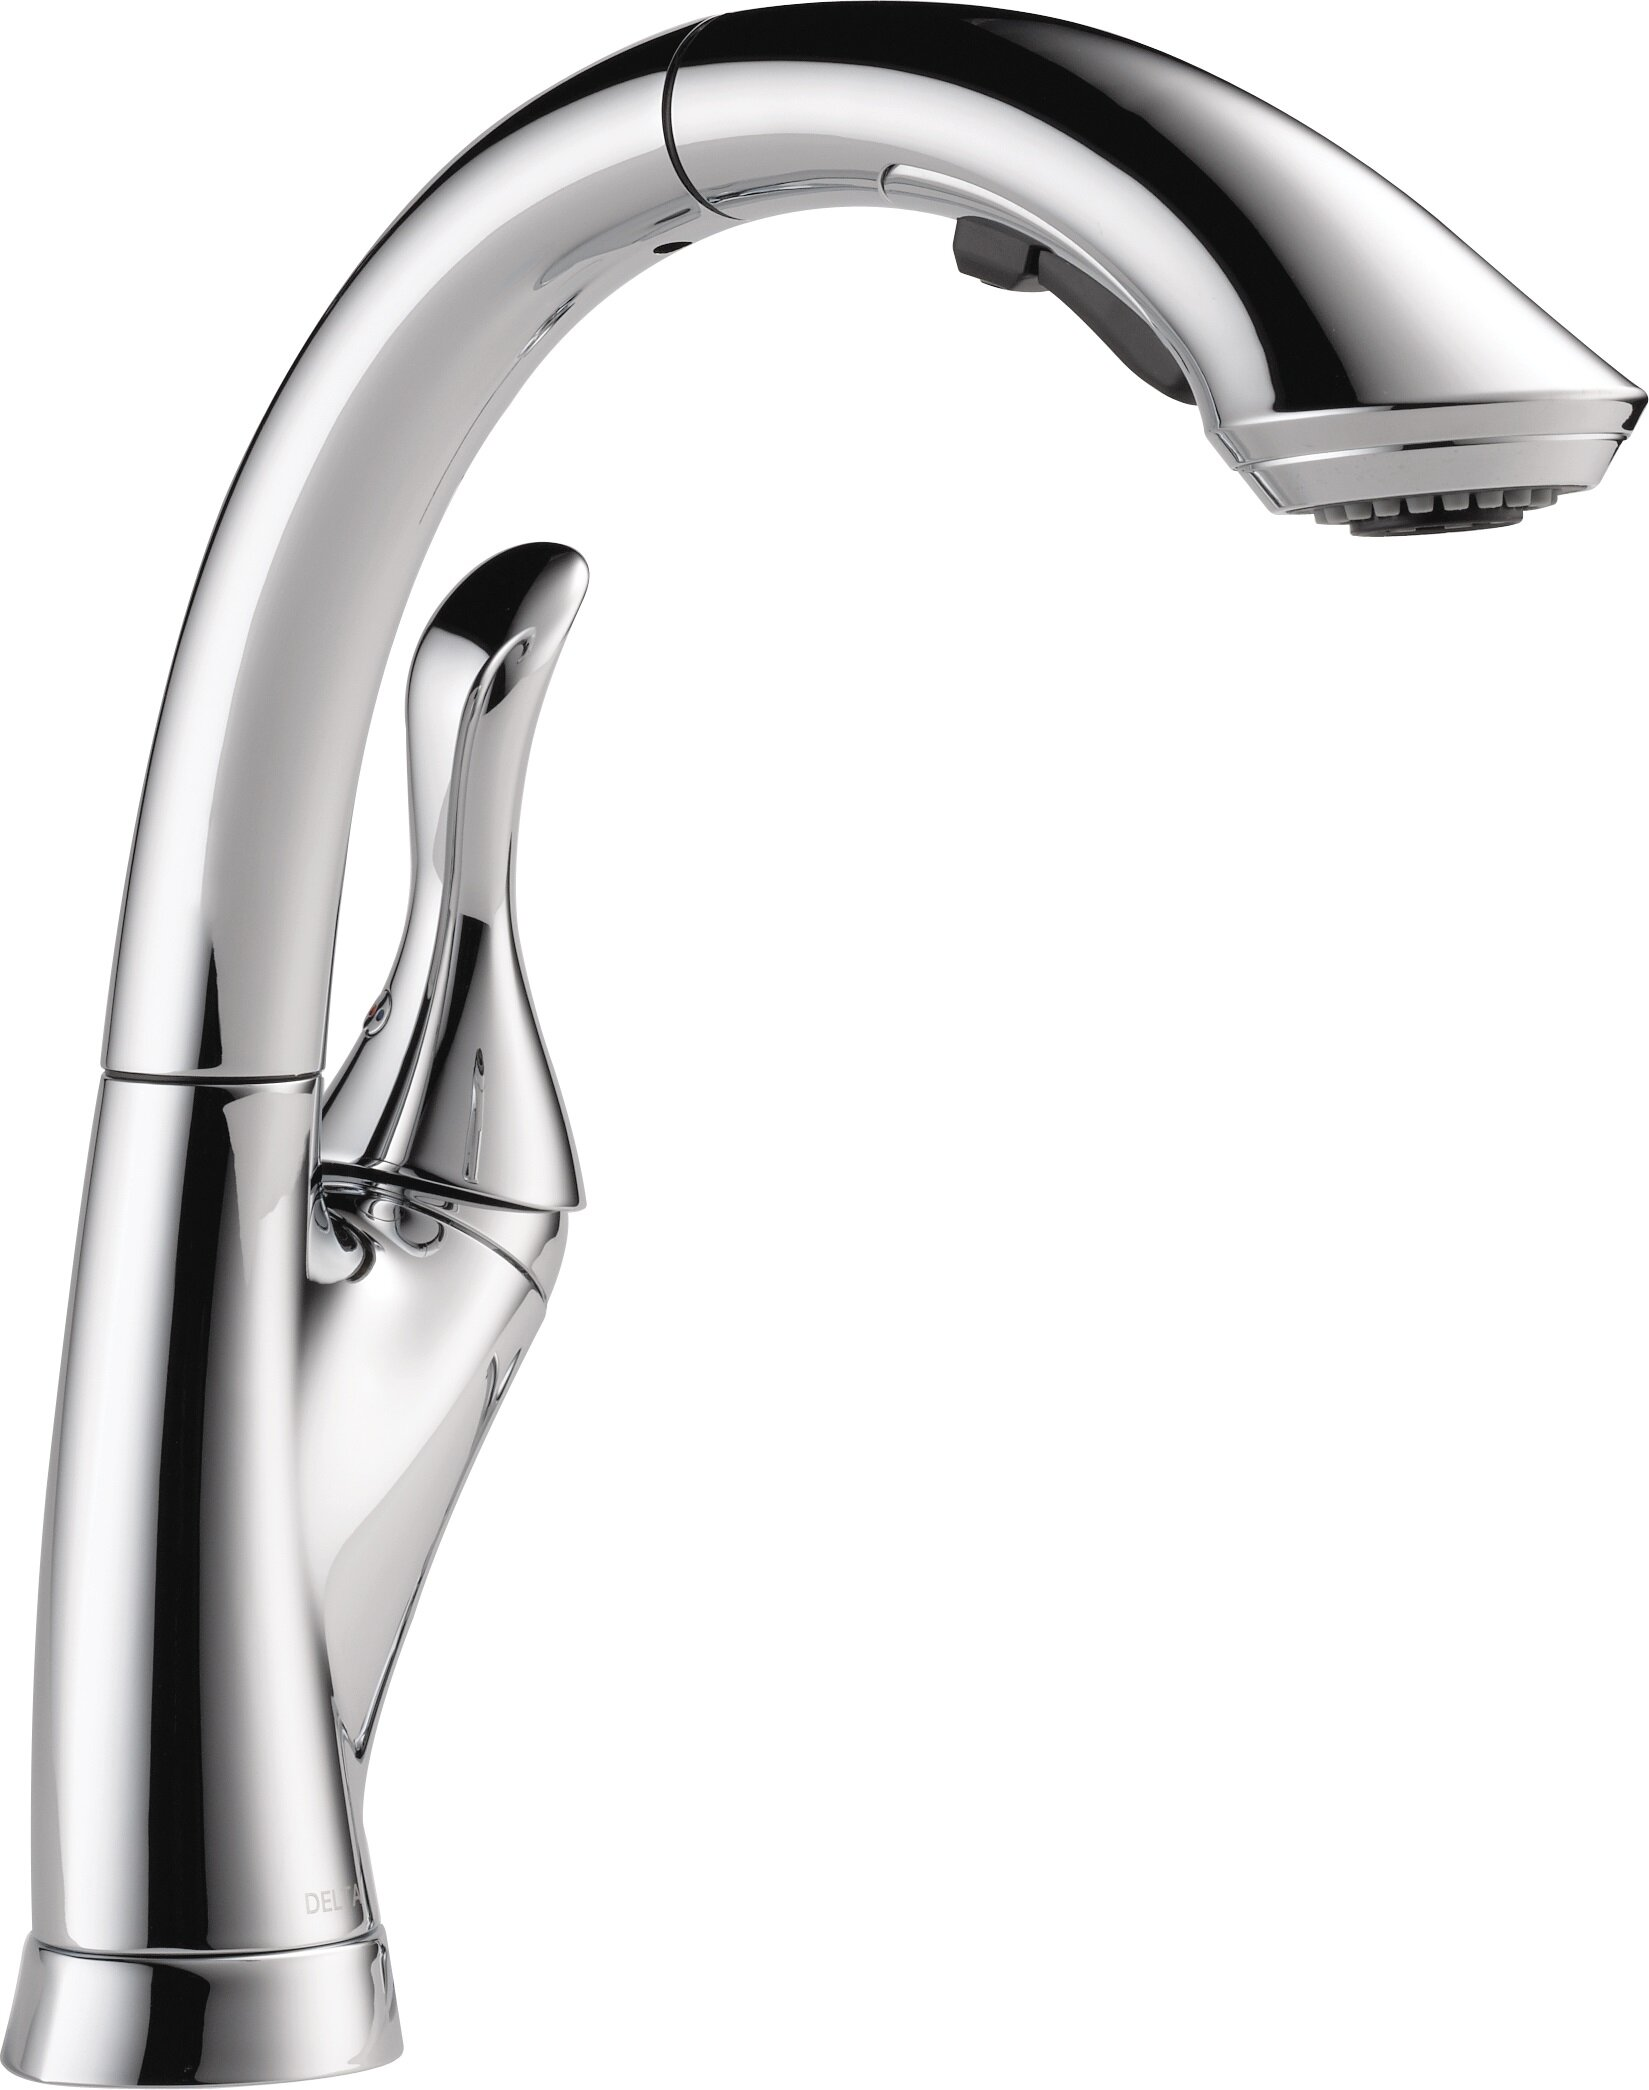 Linden Pull Down Touch Single Handle Kitchen Faucet With Diamond Seal Technology Reviews Allmodern